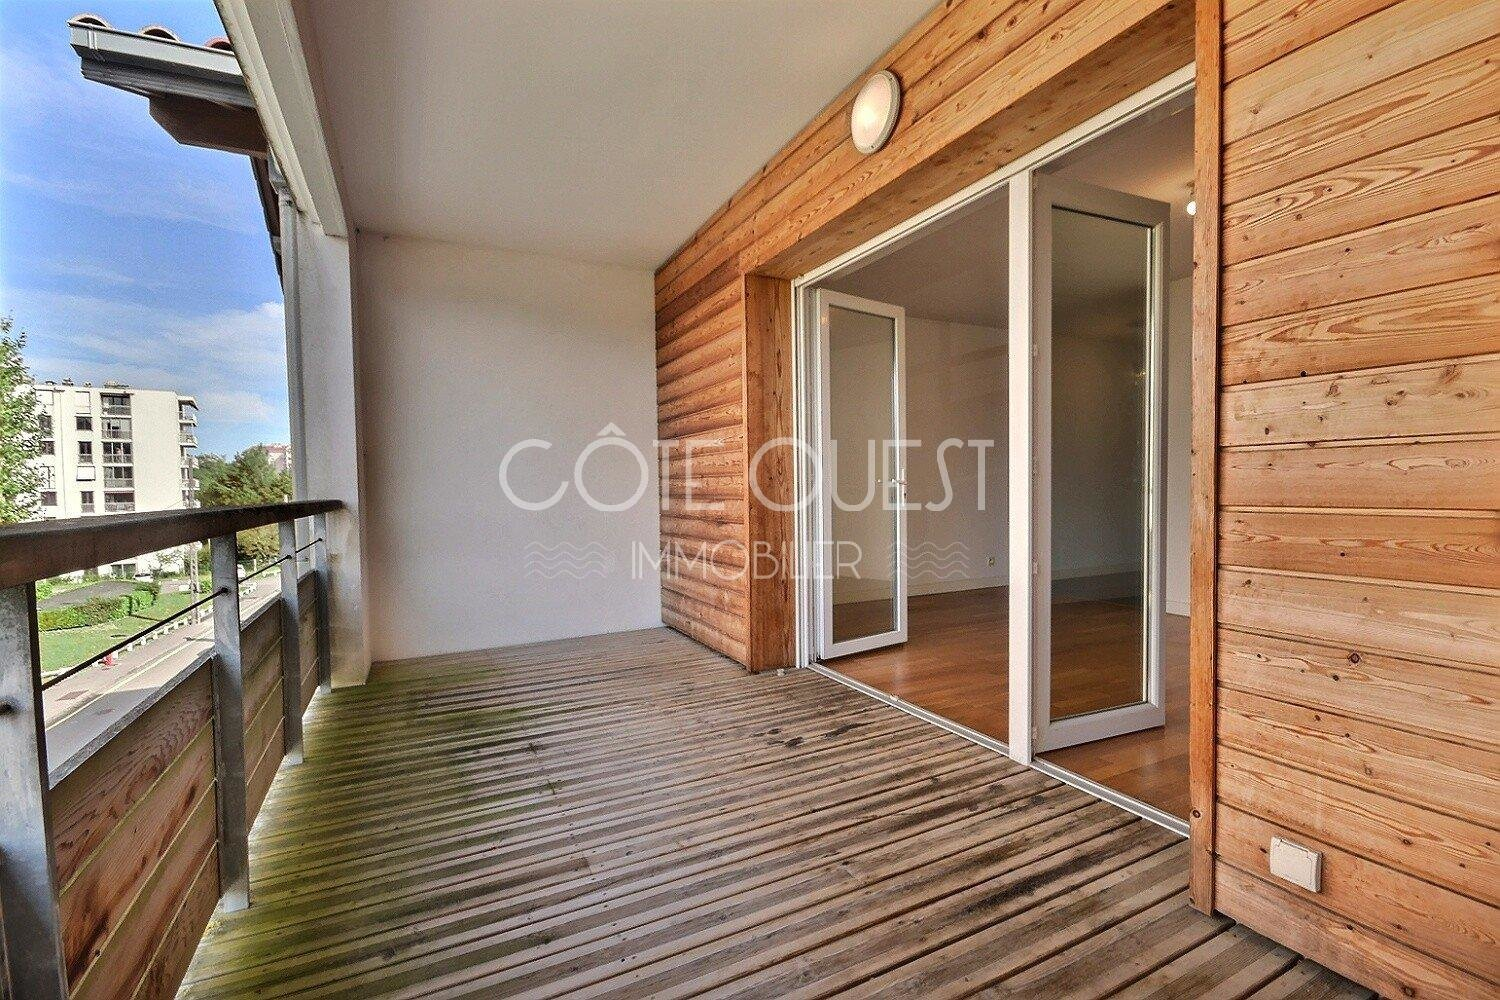 ANGLET - AN APARTMENT WITH A TERRACE NEAR THE SHOPS AND SCHOOLS